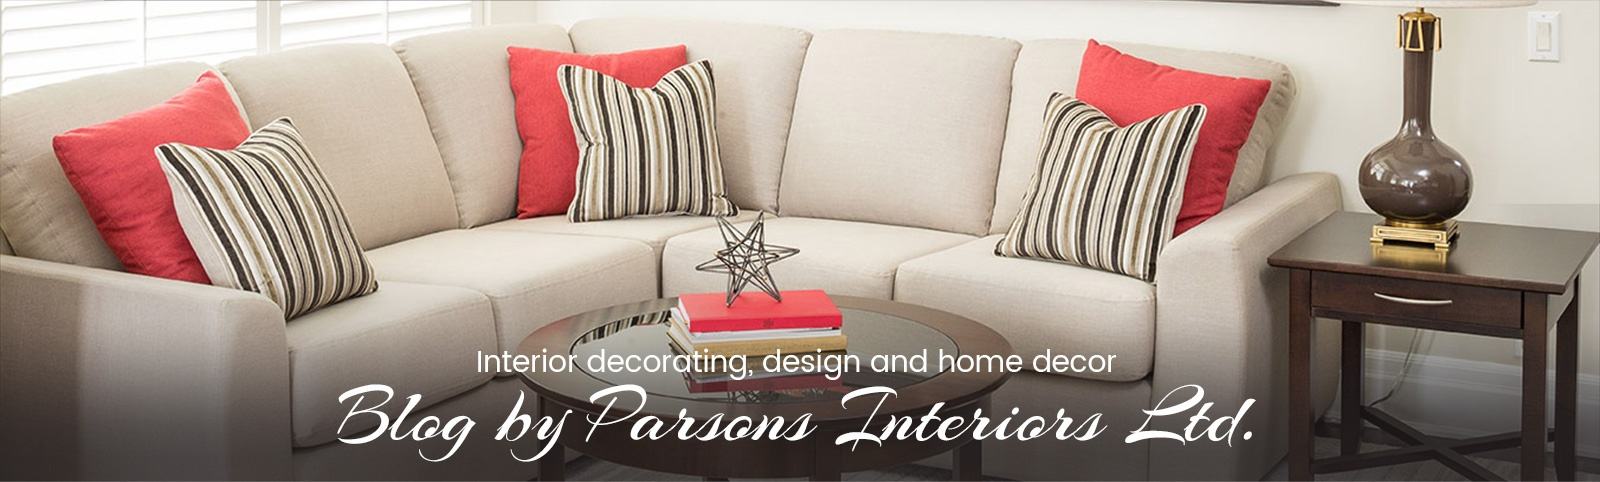 Blog by Parsons Interiors Ltd.